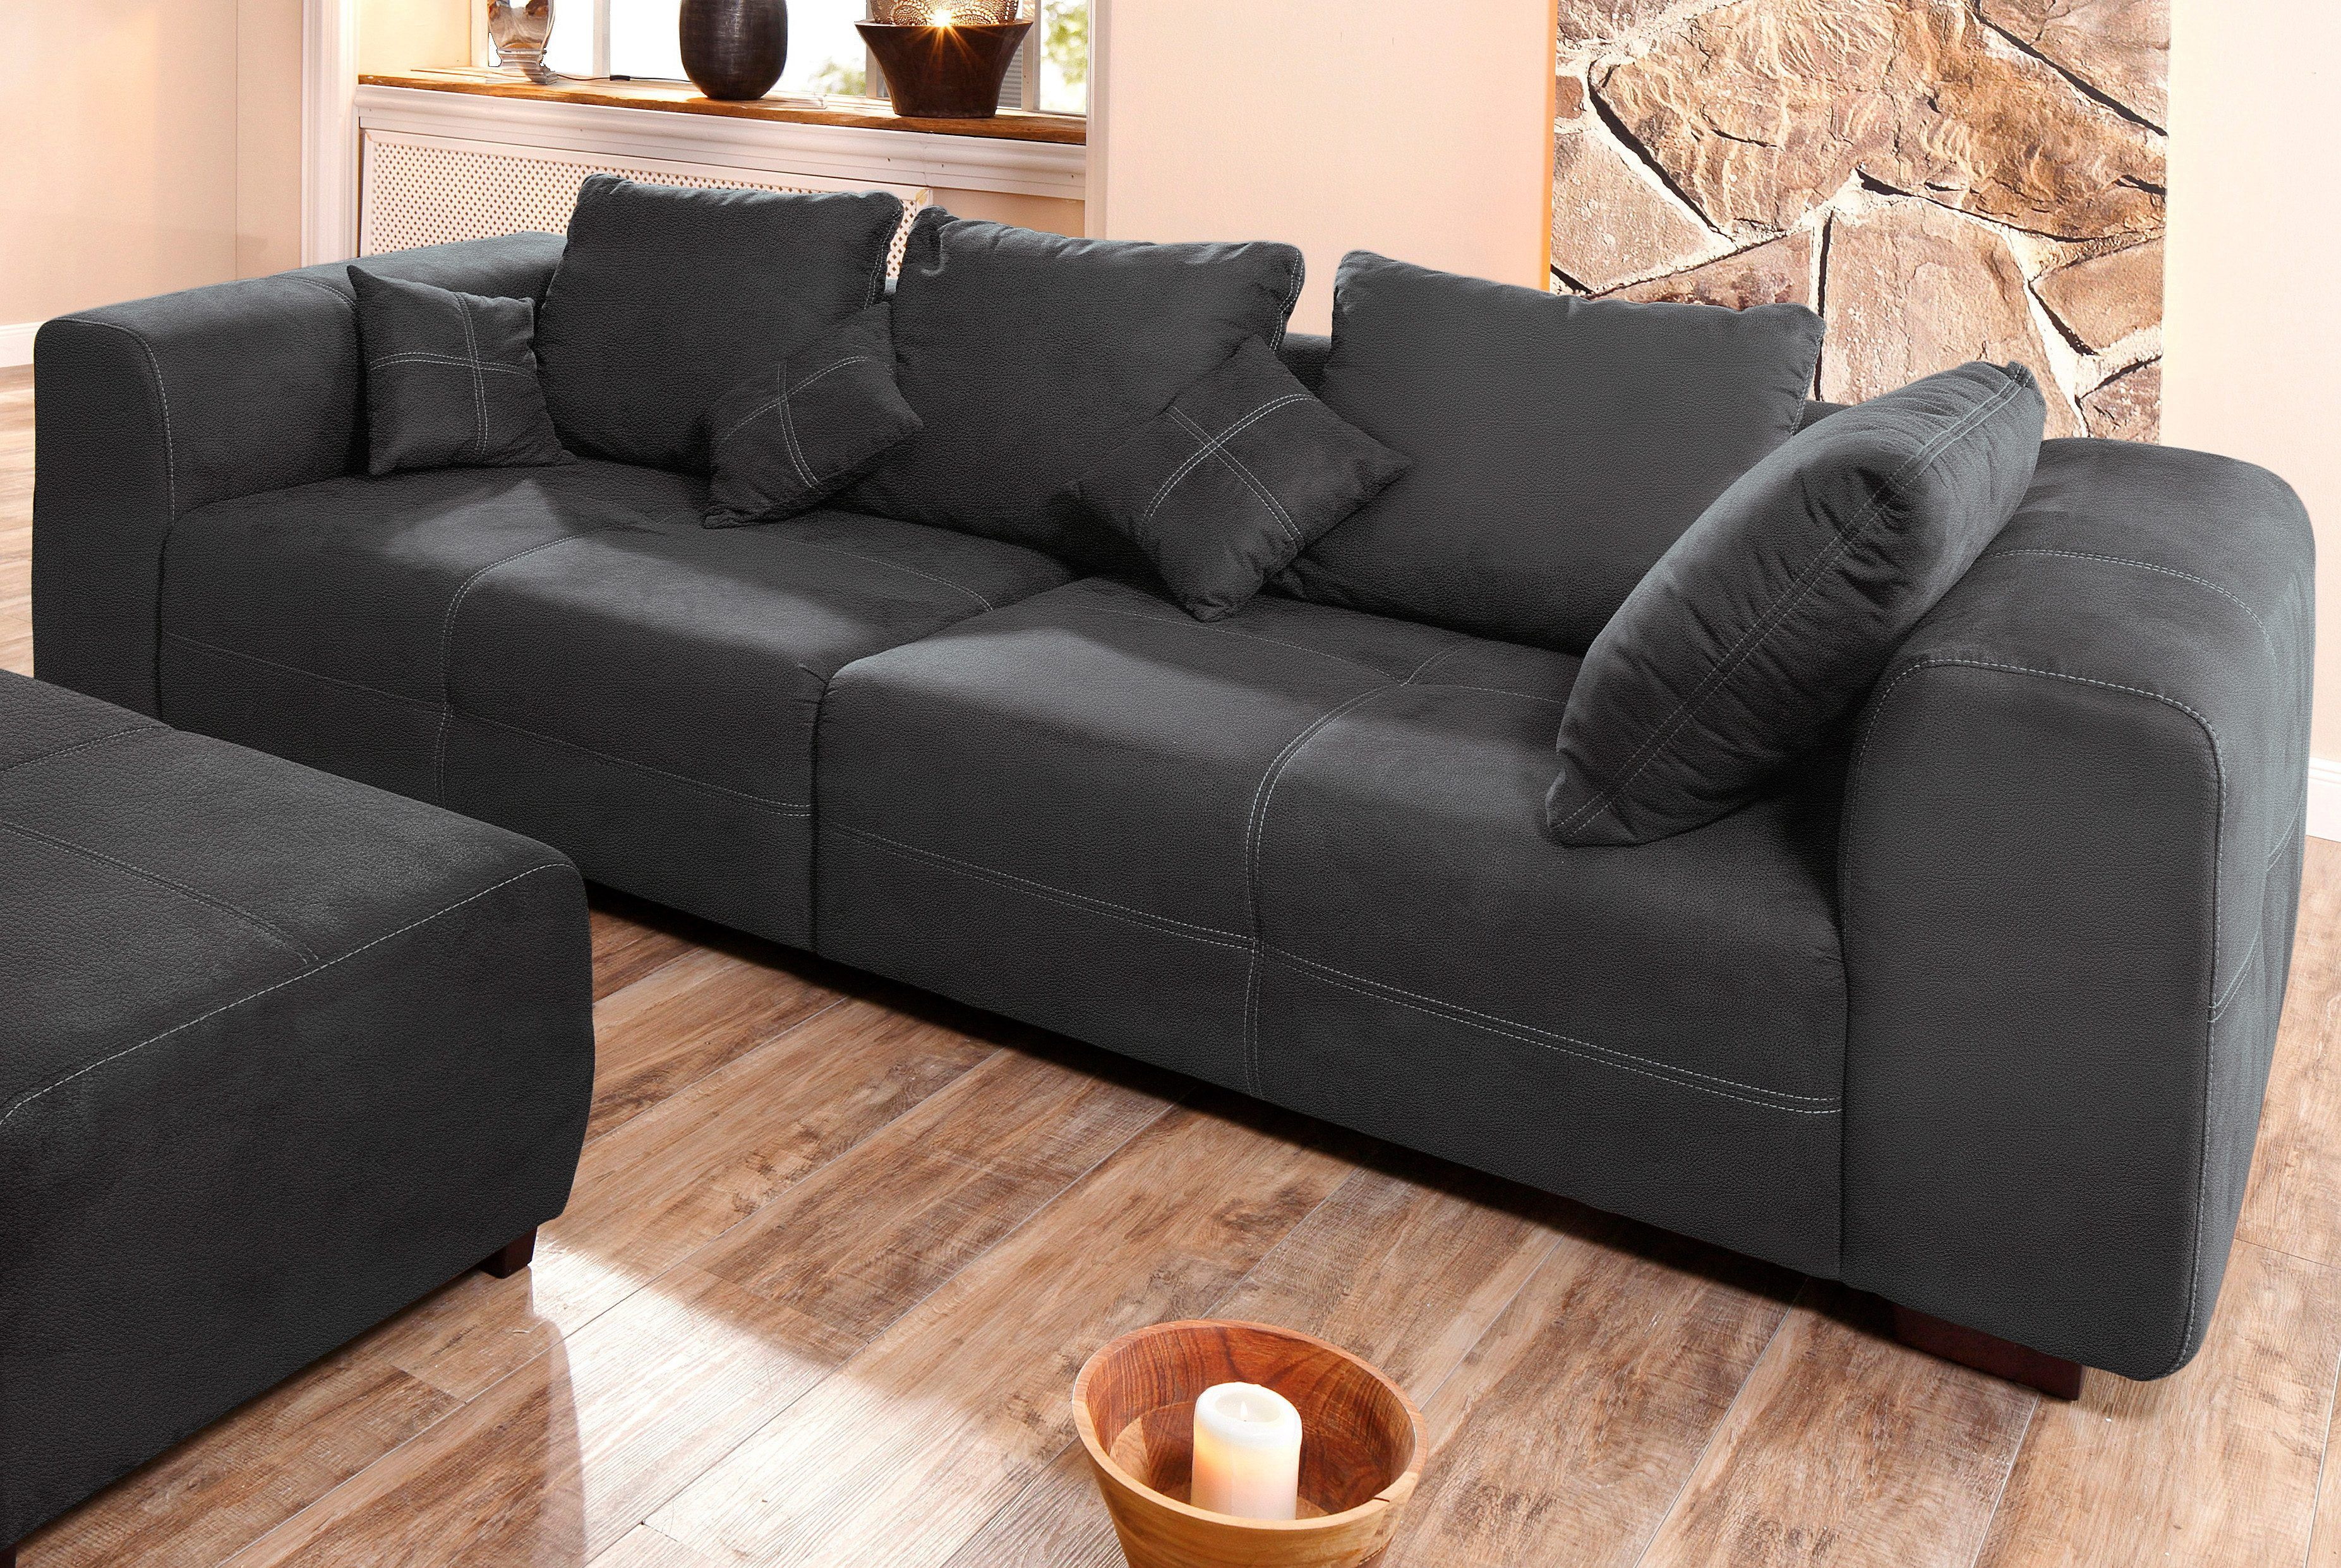 premium collection by home affaire big-sofa schwarz, »maverick ... - Wohnzimmer Sofa Schwarz